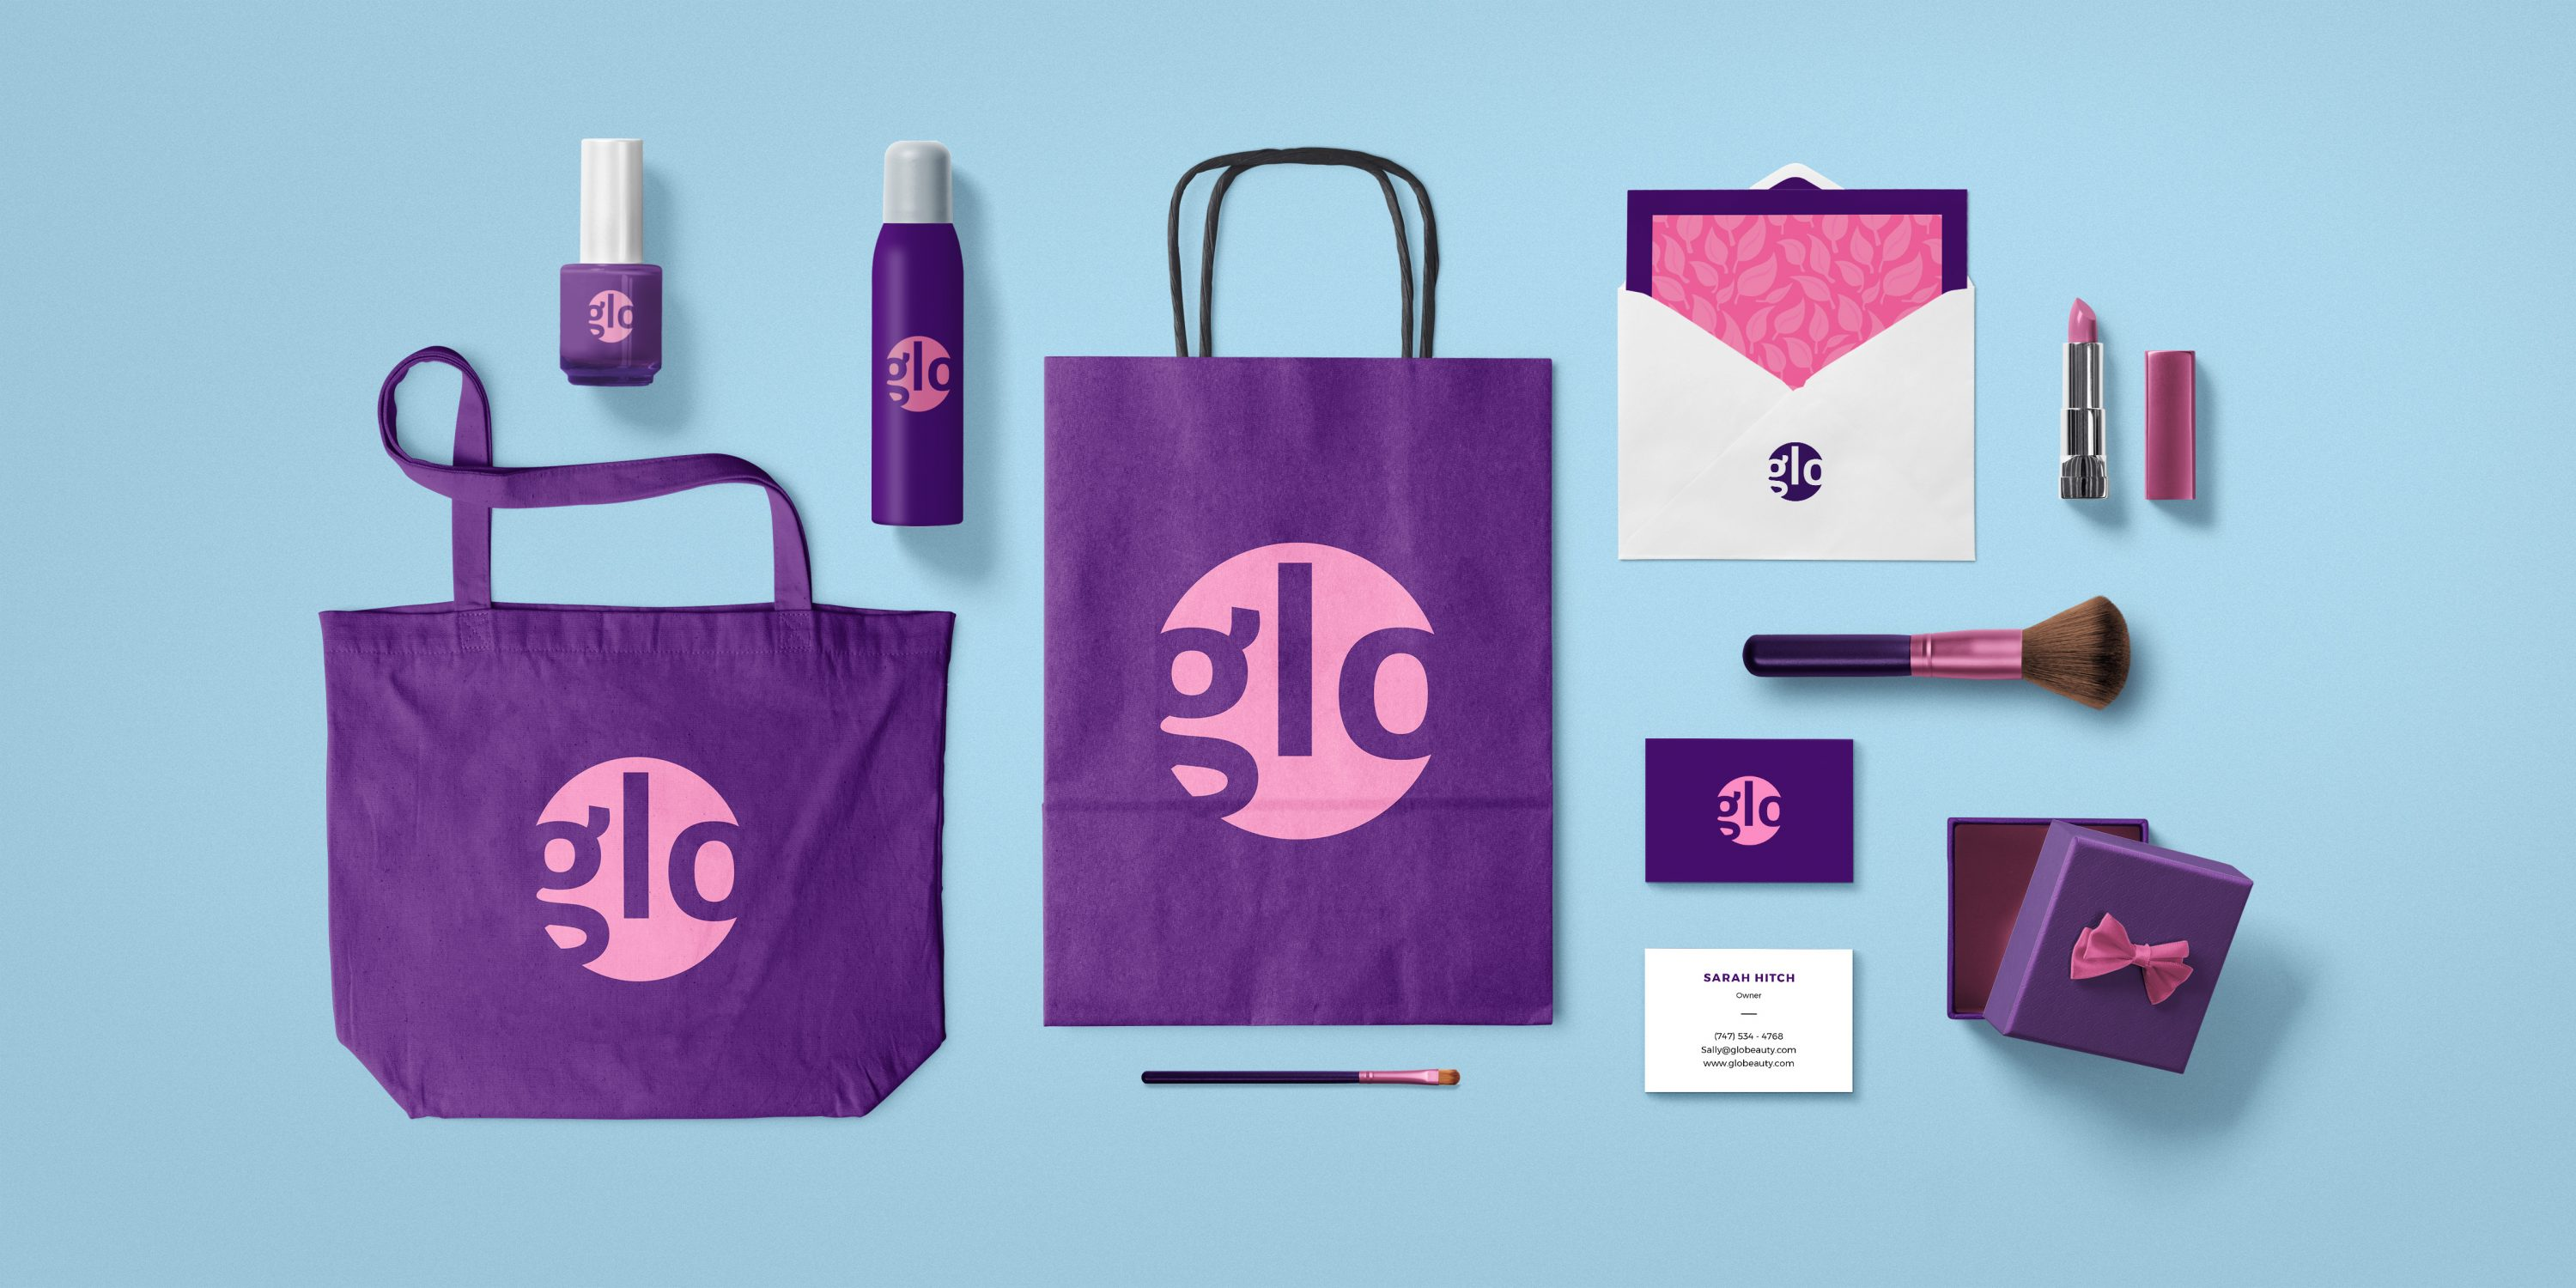 Branded assets for a company named Glo